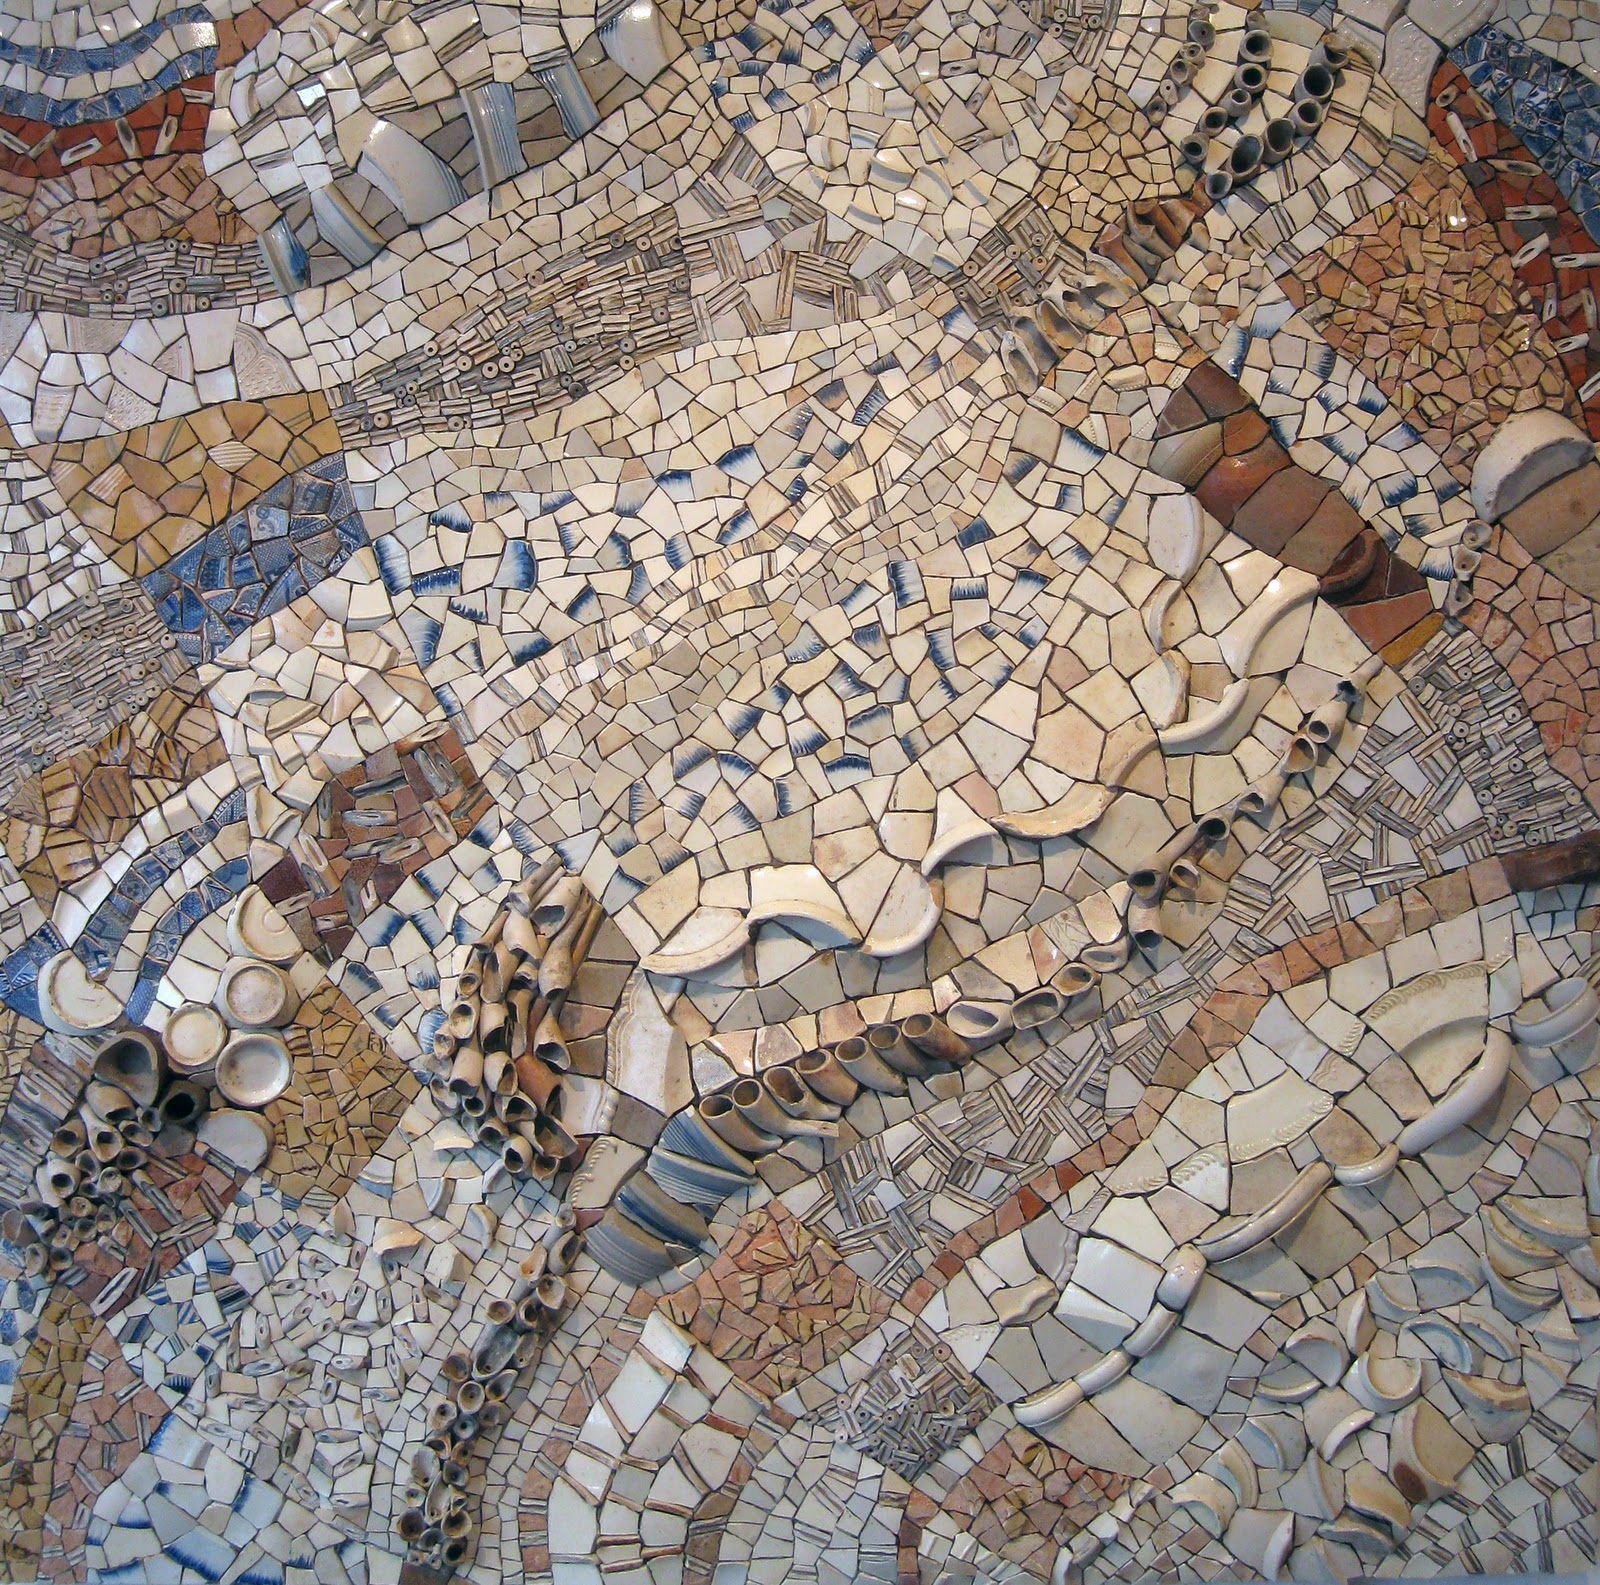 Mosaic art now mudlark superb new work by biggs collings for Mosaic painting meaning